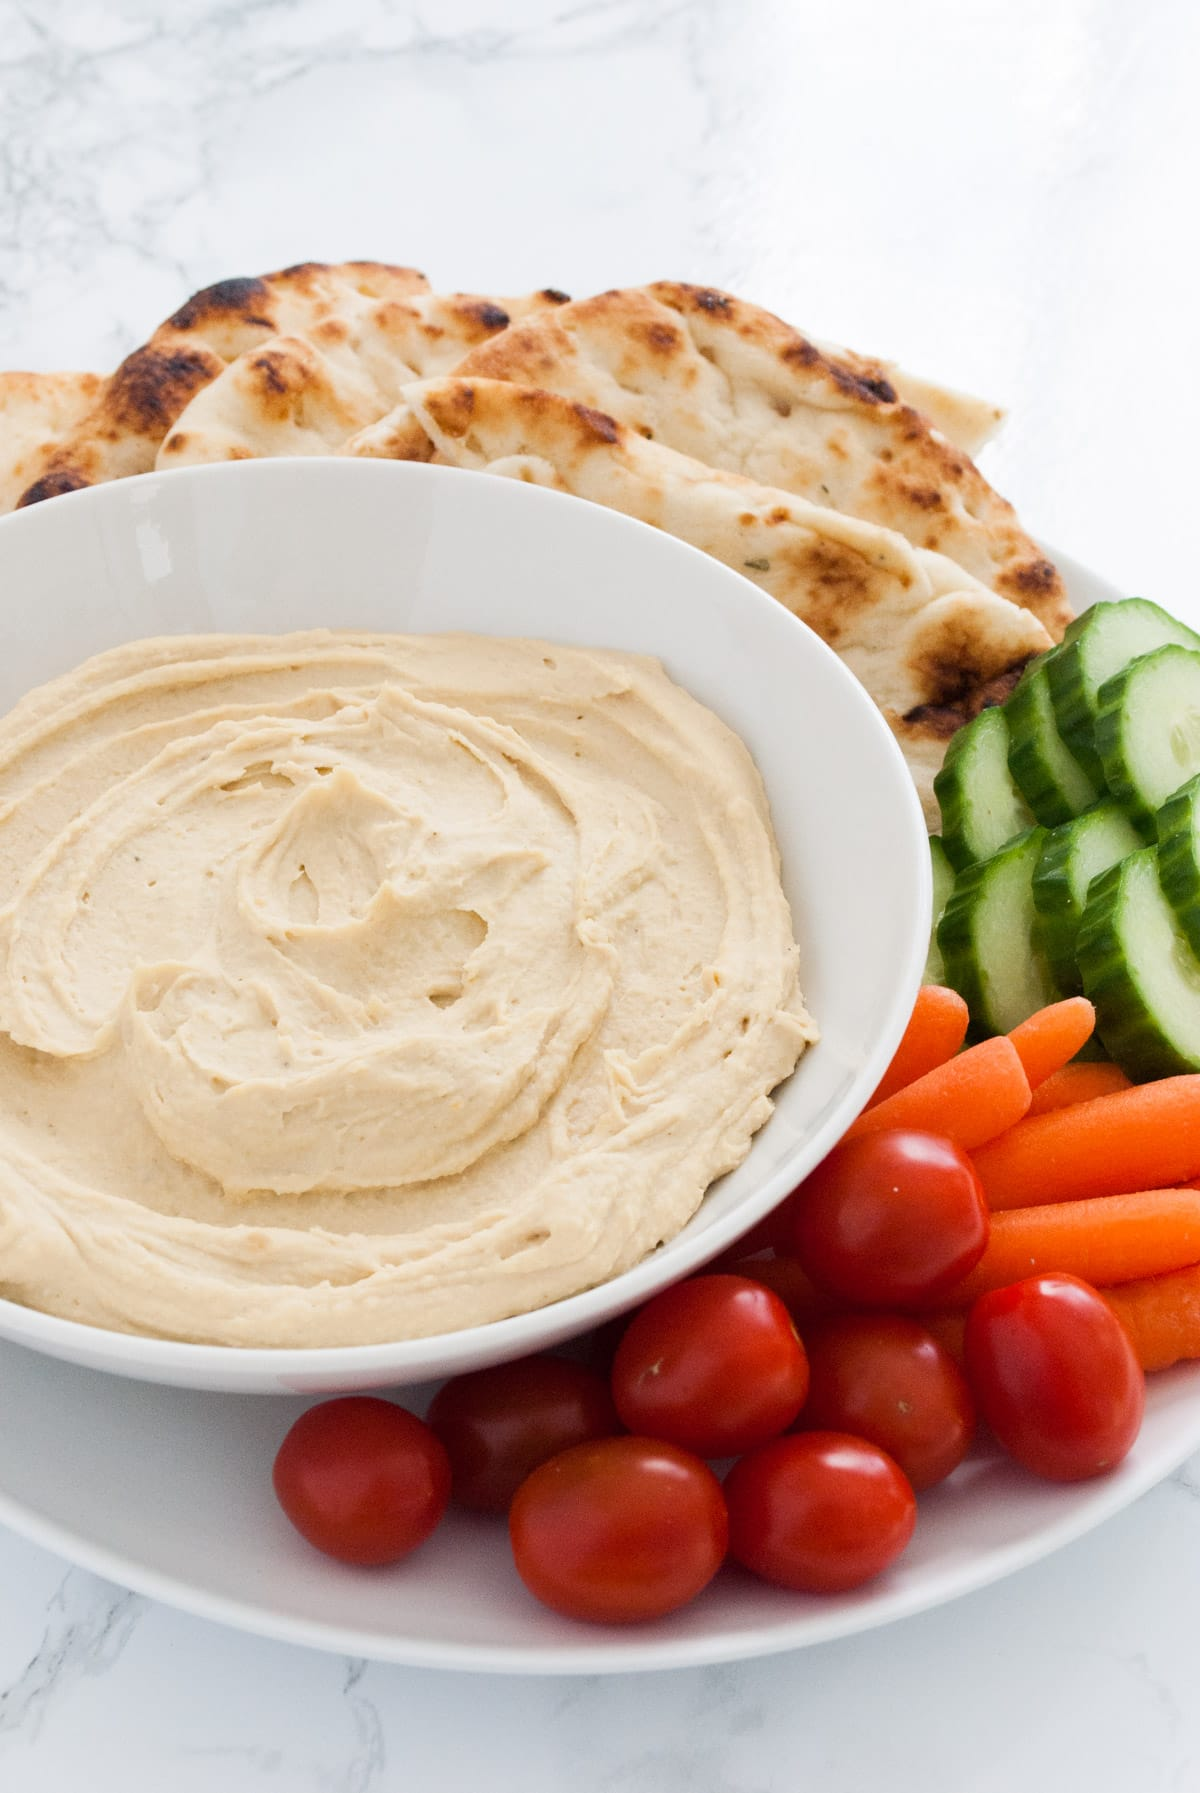 creamy hummus in a bowl surrounded by pita bread and cut veggies